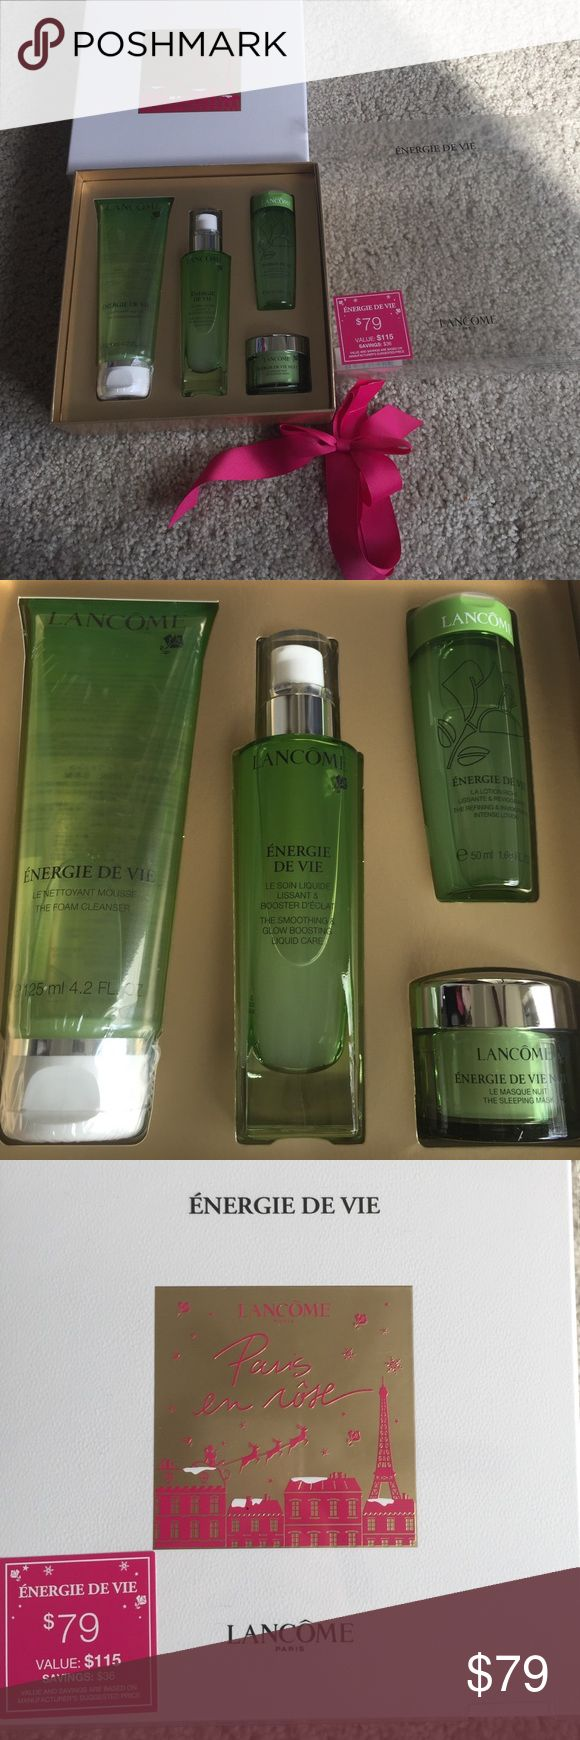 Lancôme energie de vie skincare set Brand new skincare gift set. Full size foam cleanser $55, booster hydrating serum $55. Travel size sleep mask and toner in gift box. Value $115. Never opened new. Purchased in Oct 2016 at Bloomingdales. No trade. Price firm. I have 10% bundle discount. Lancome Makeup